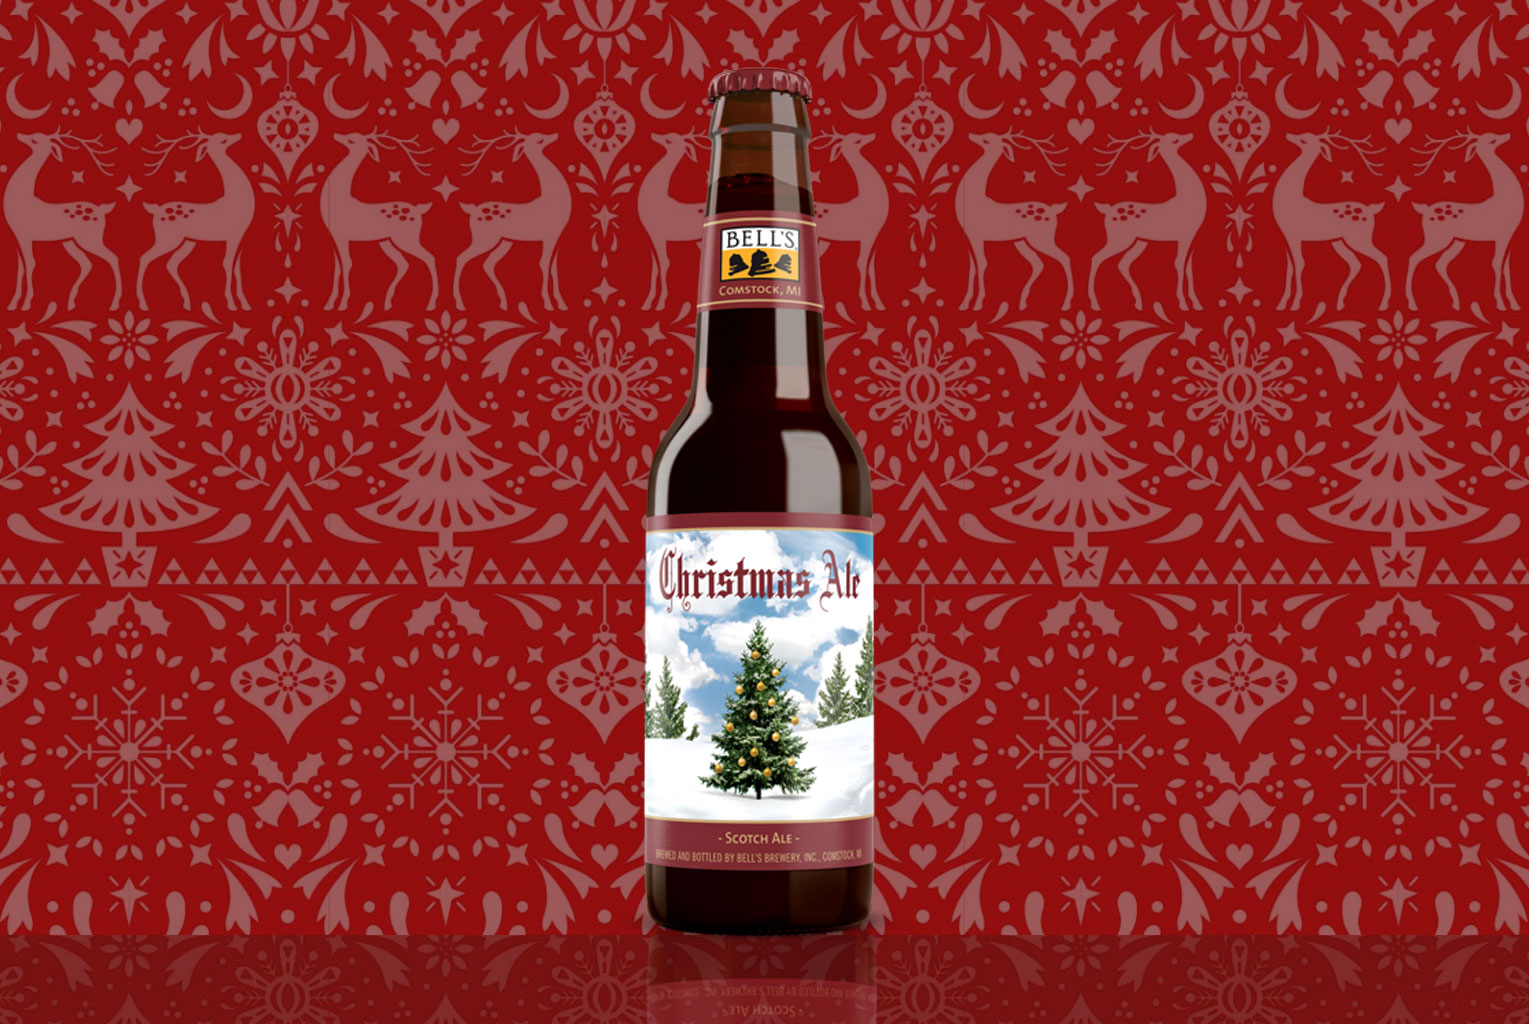 Bells Christmas Ale.The Hop Review Beer Interviews Photography Travel